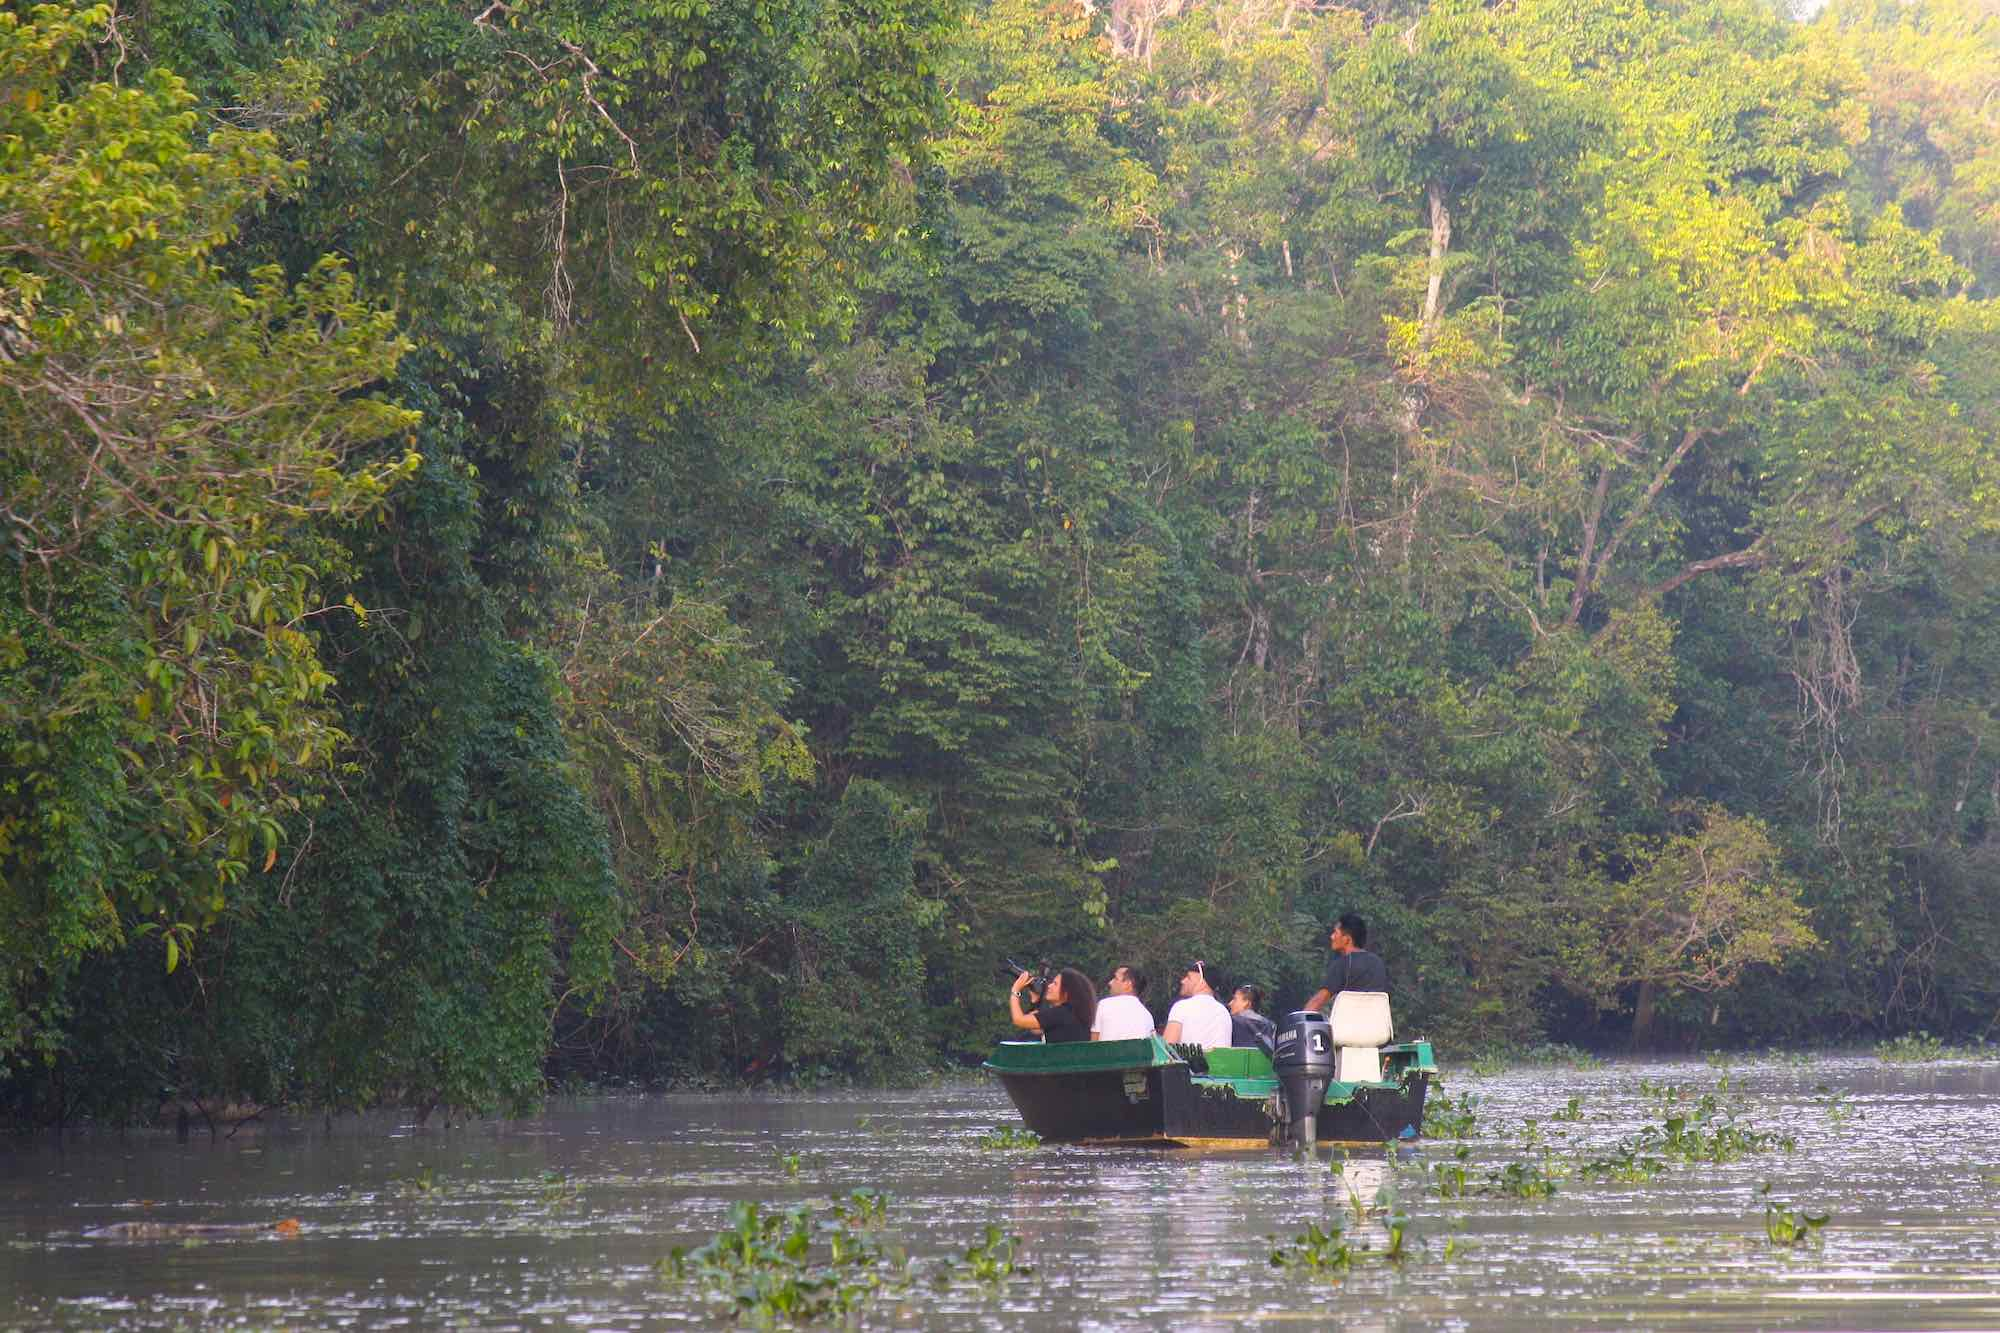 Watching orangutans on the Menanggul River, Kinabatangan